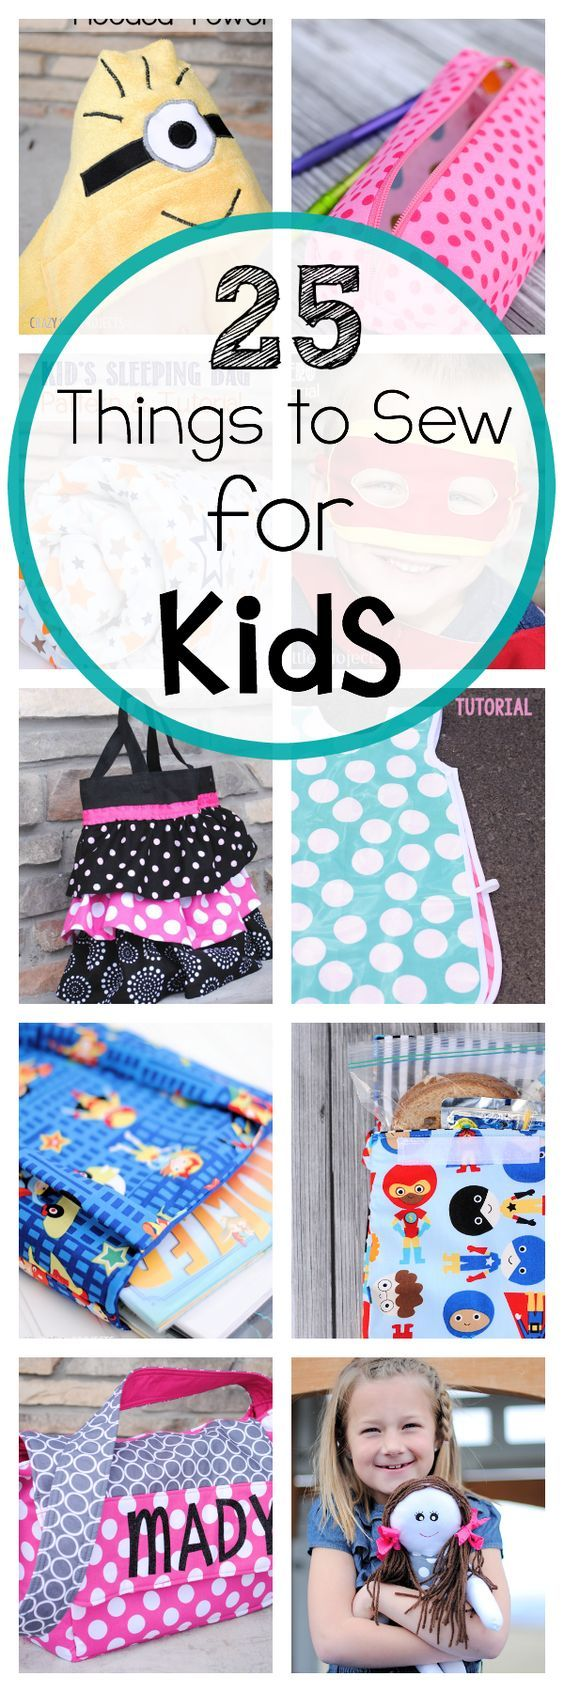 25 Things to sew for kids of all ages-toddlers, preschoolers, kids, teens, and all children.